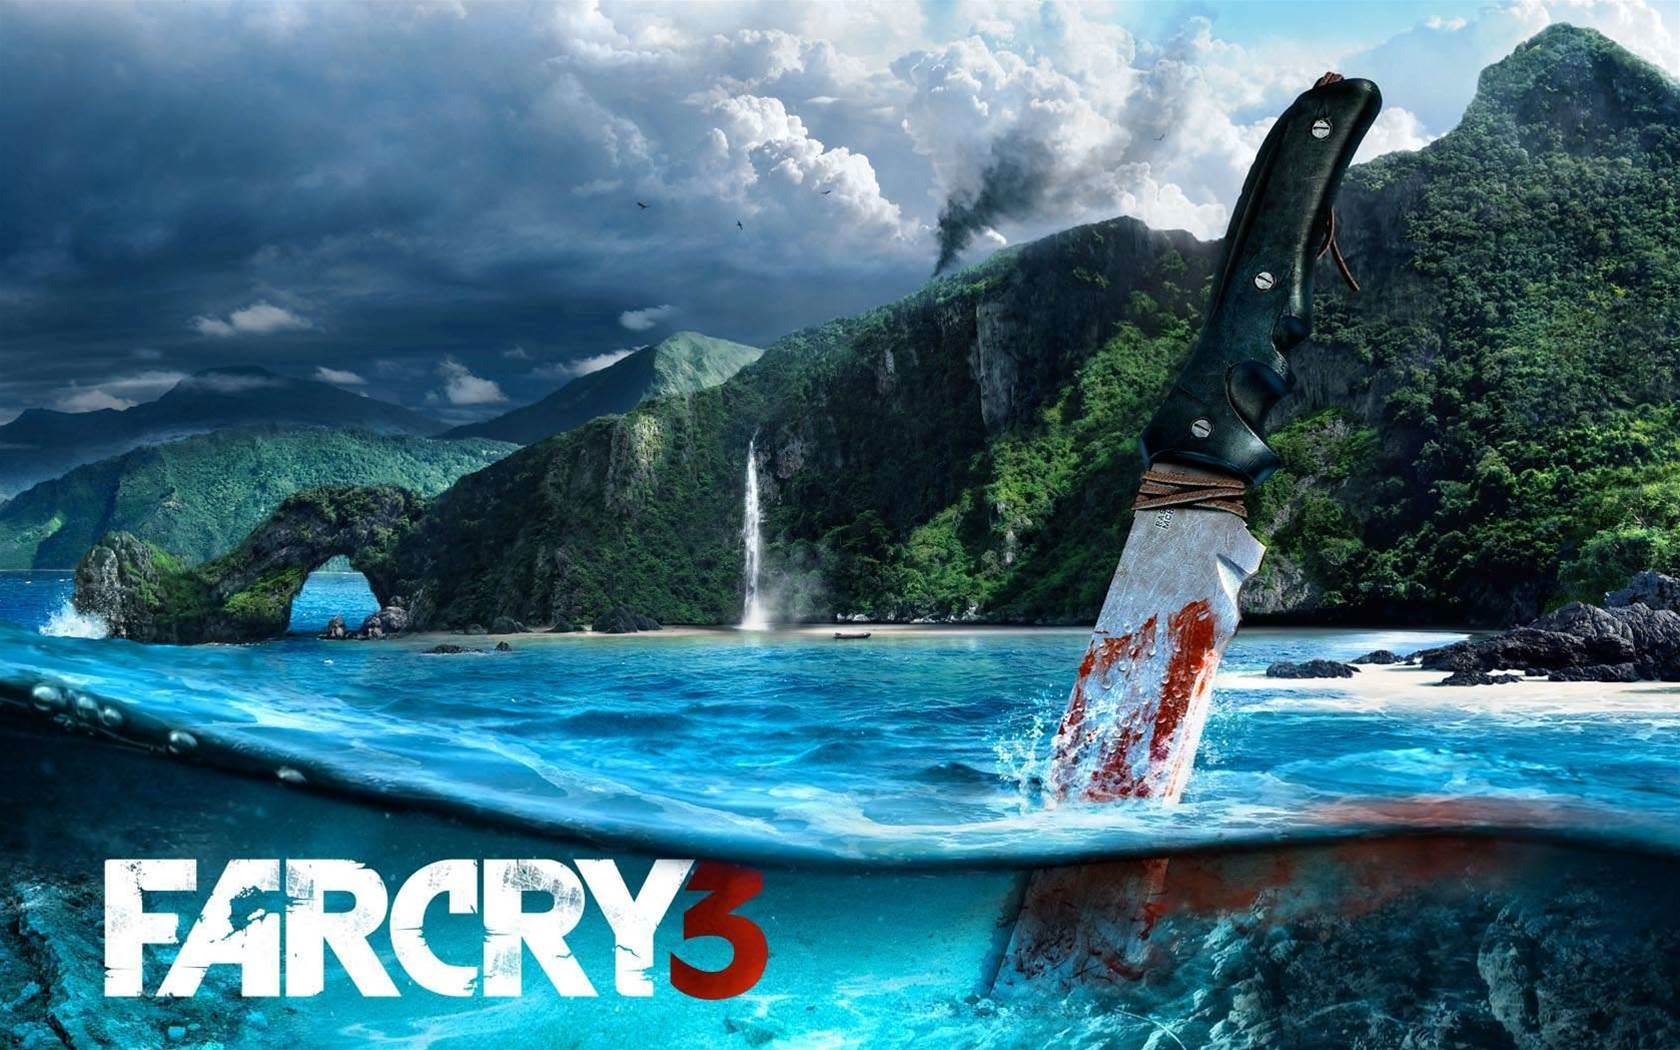 New Far Cry 3 CGI trailer brings the crazies